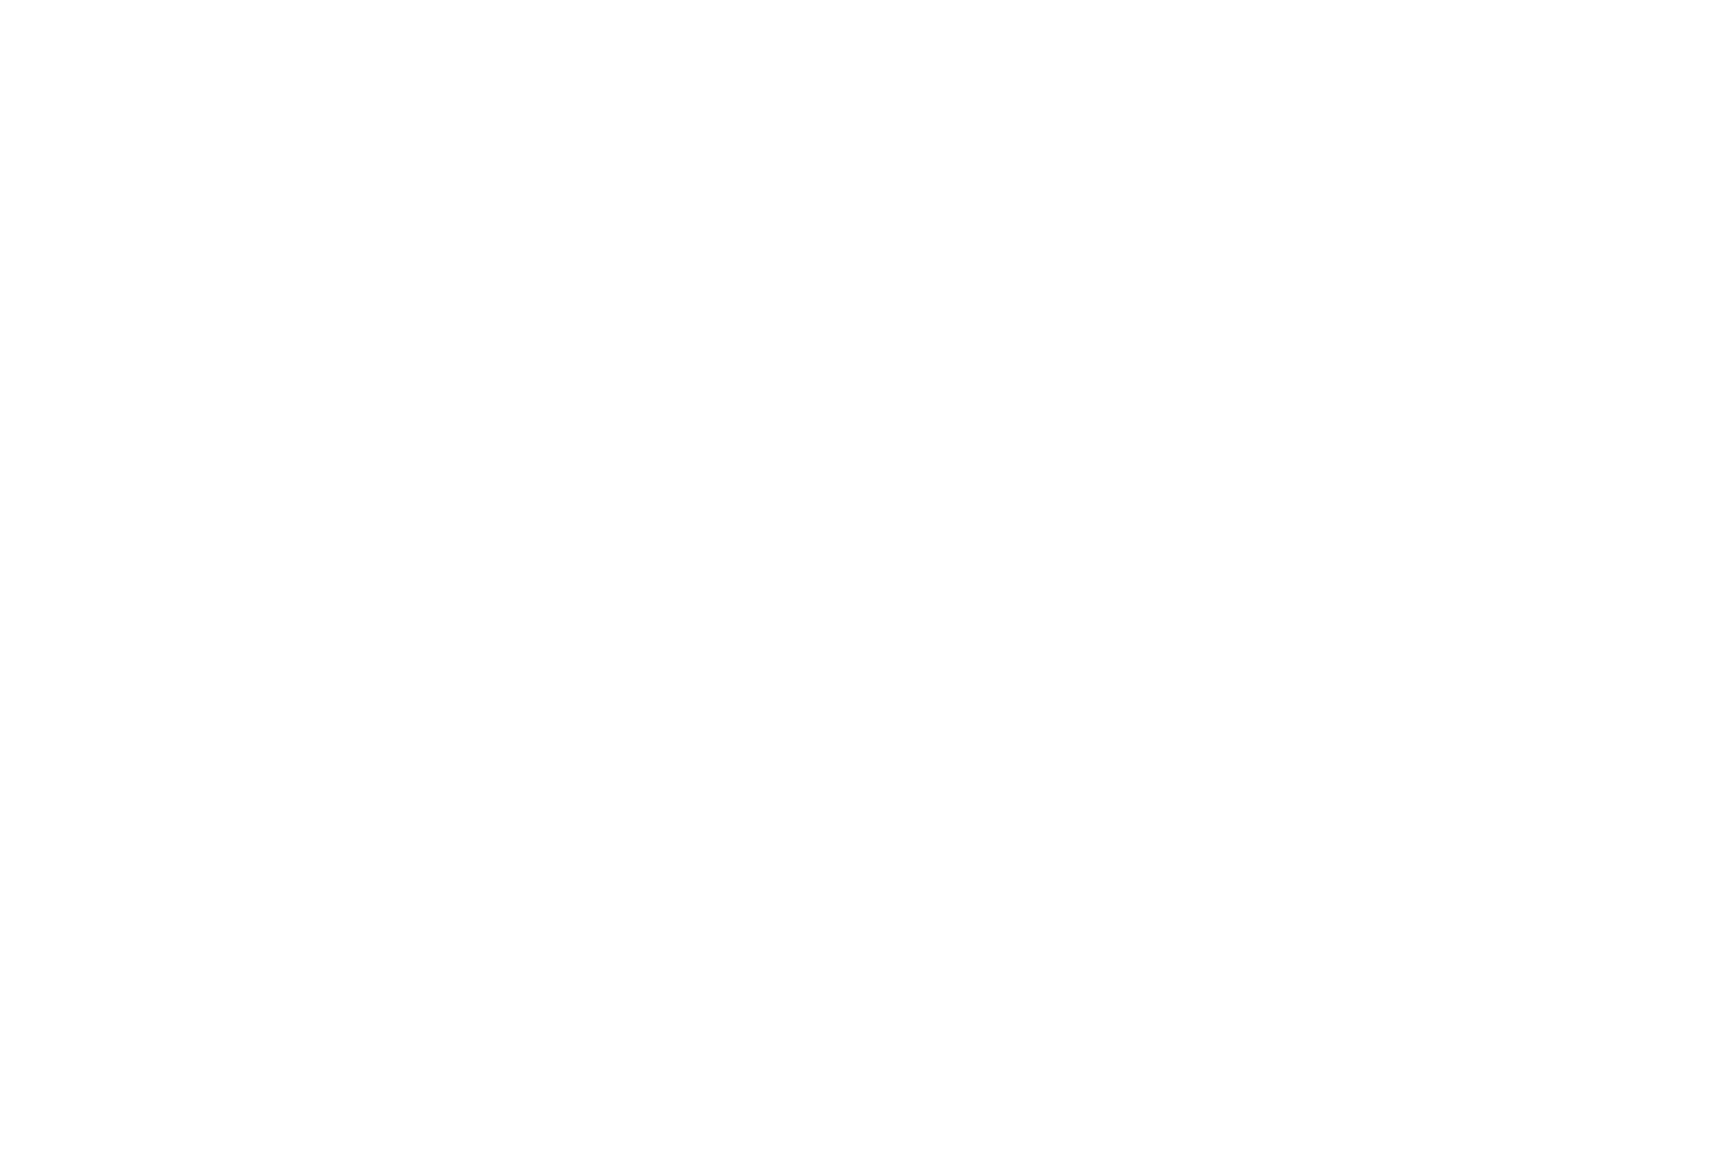 WHITEBEST PERFORMANCE NOMINEE - KATHERINE GEORGE - NEWARK INTERNATIONAL FILM FESTIVAL.png